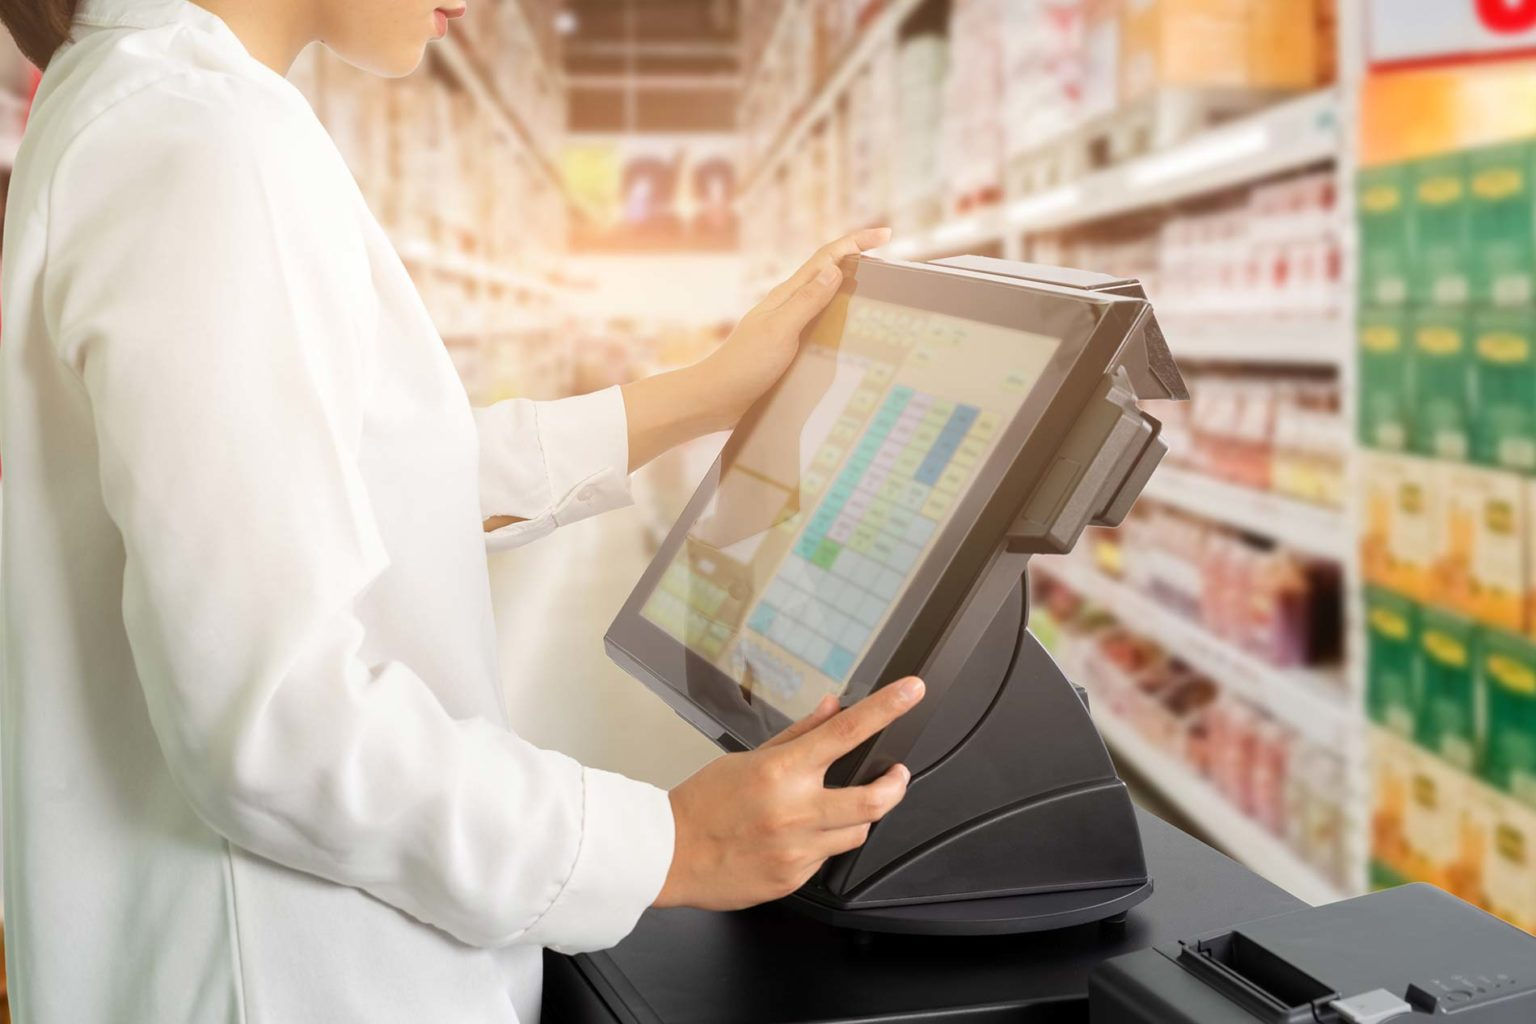 Point of sale system for inventory management